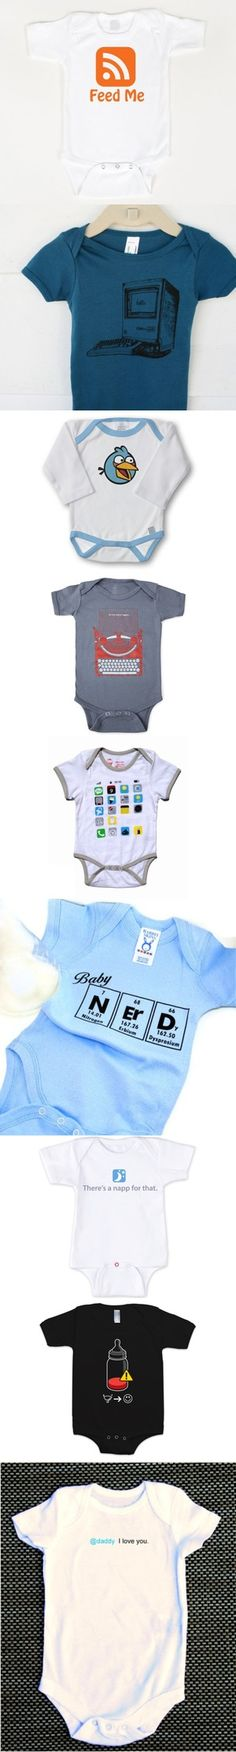 Baby Geek http://tobtr.com/s/4535805<-Listen http://www.twitch.tv/gameinatrix_ggr <-Watch Stylish onesies for baby geeks per @Mashable - cool, huh? @Mashable